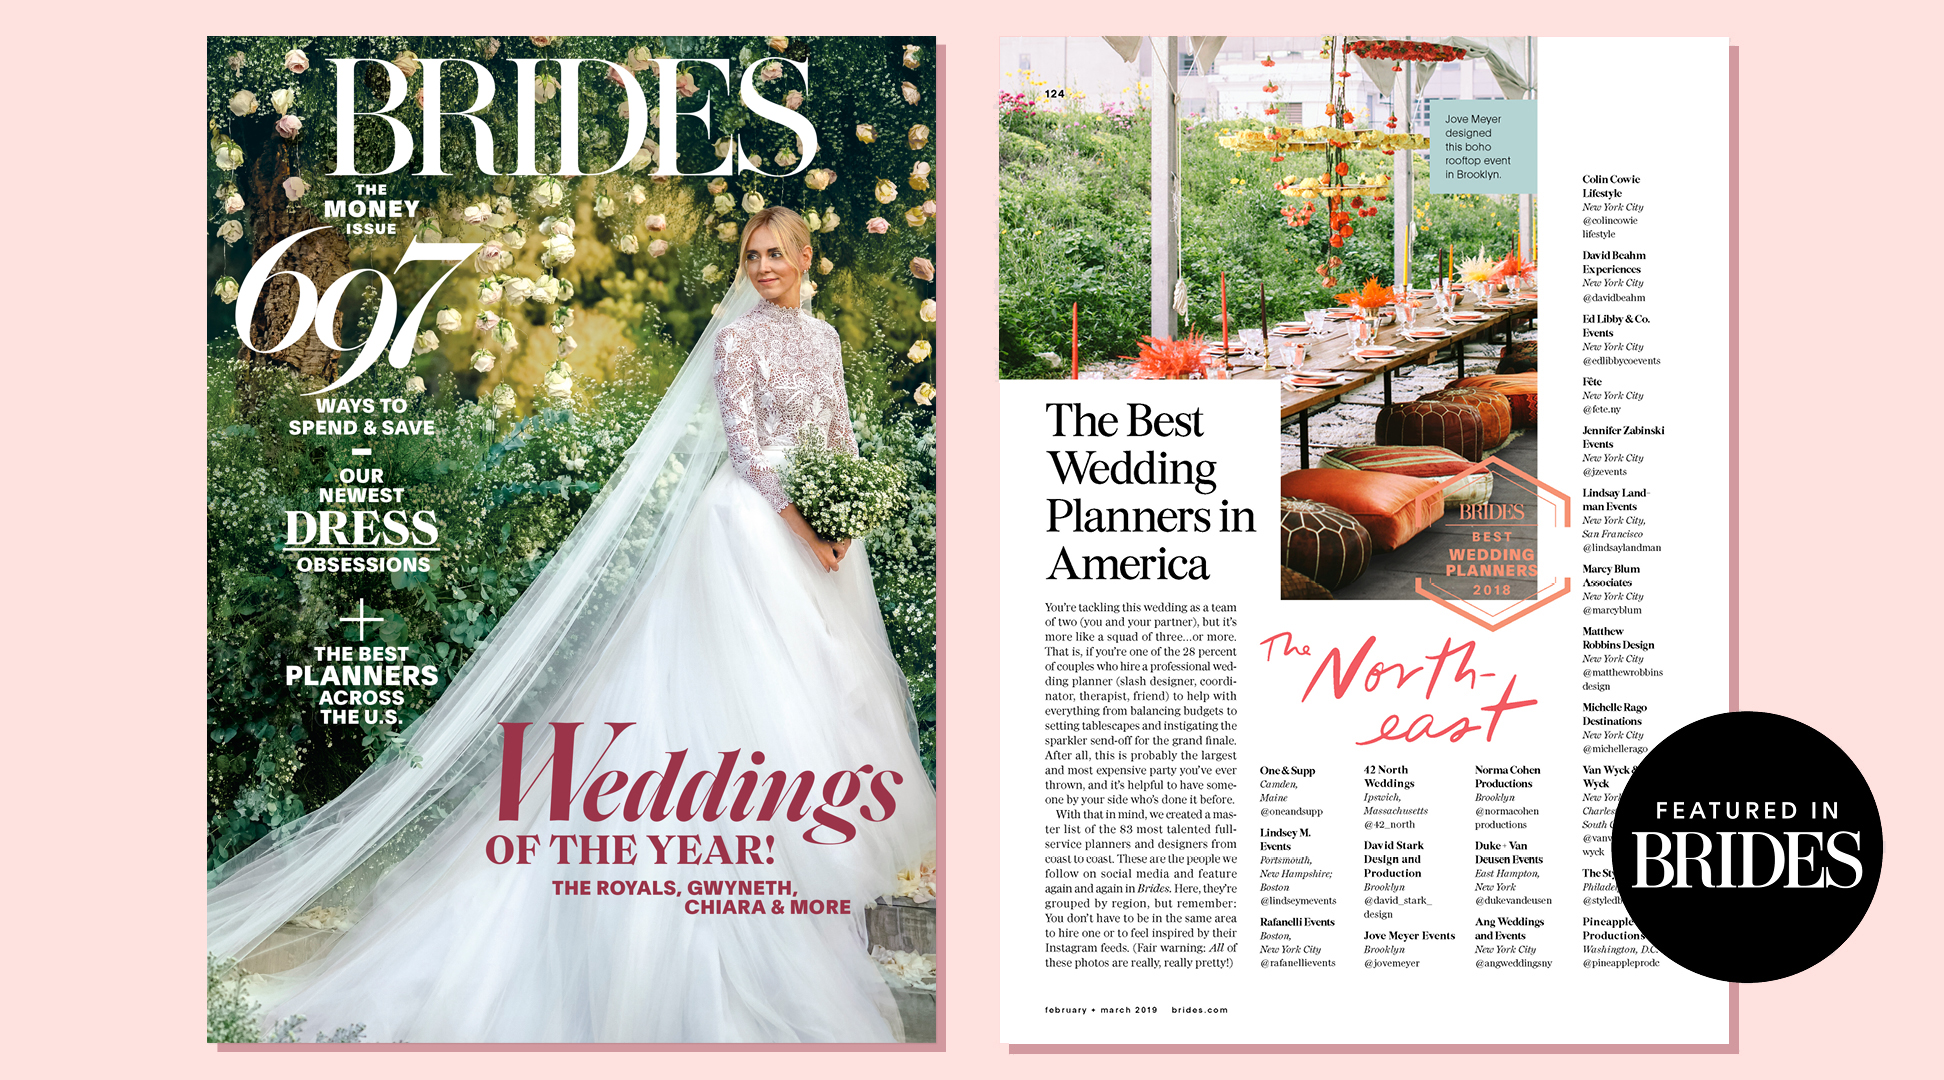 Jennifer Zabinski Wedding As Seen In Bride Magazine - Best Wedding Planner in America